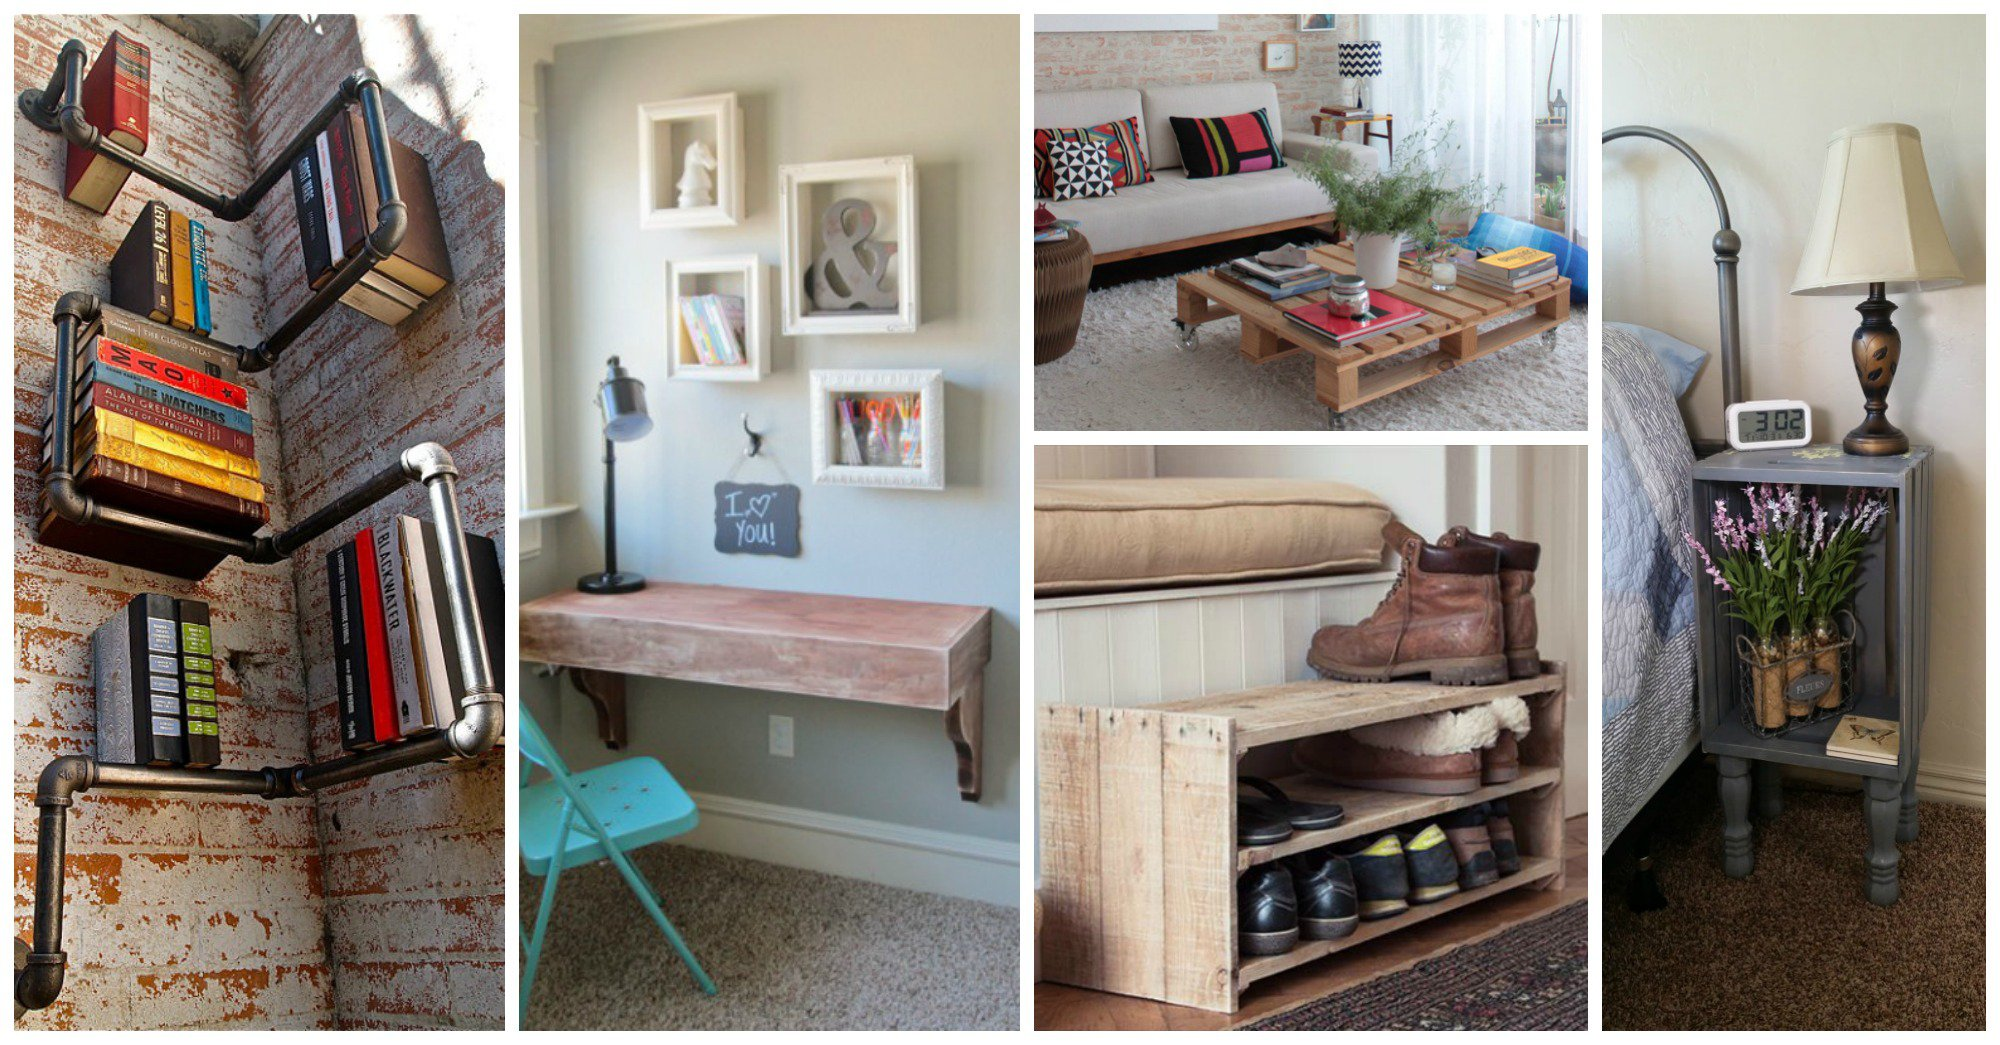 15 ideas creativas para reciclar y decorar - Reciclar para decorar ...